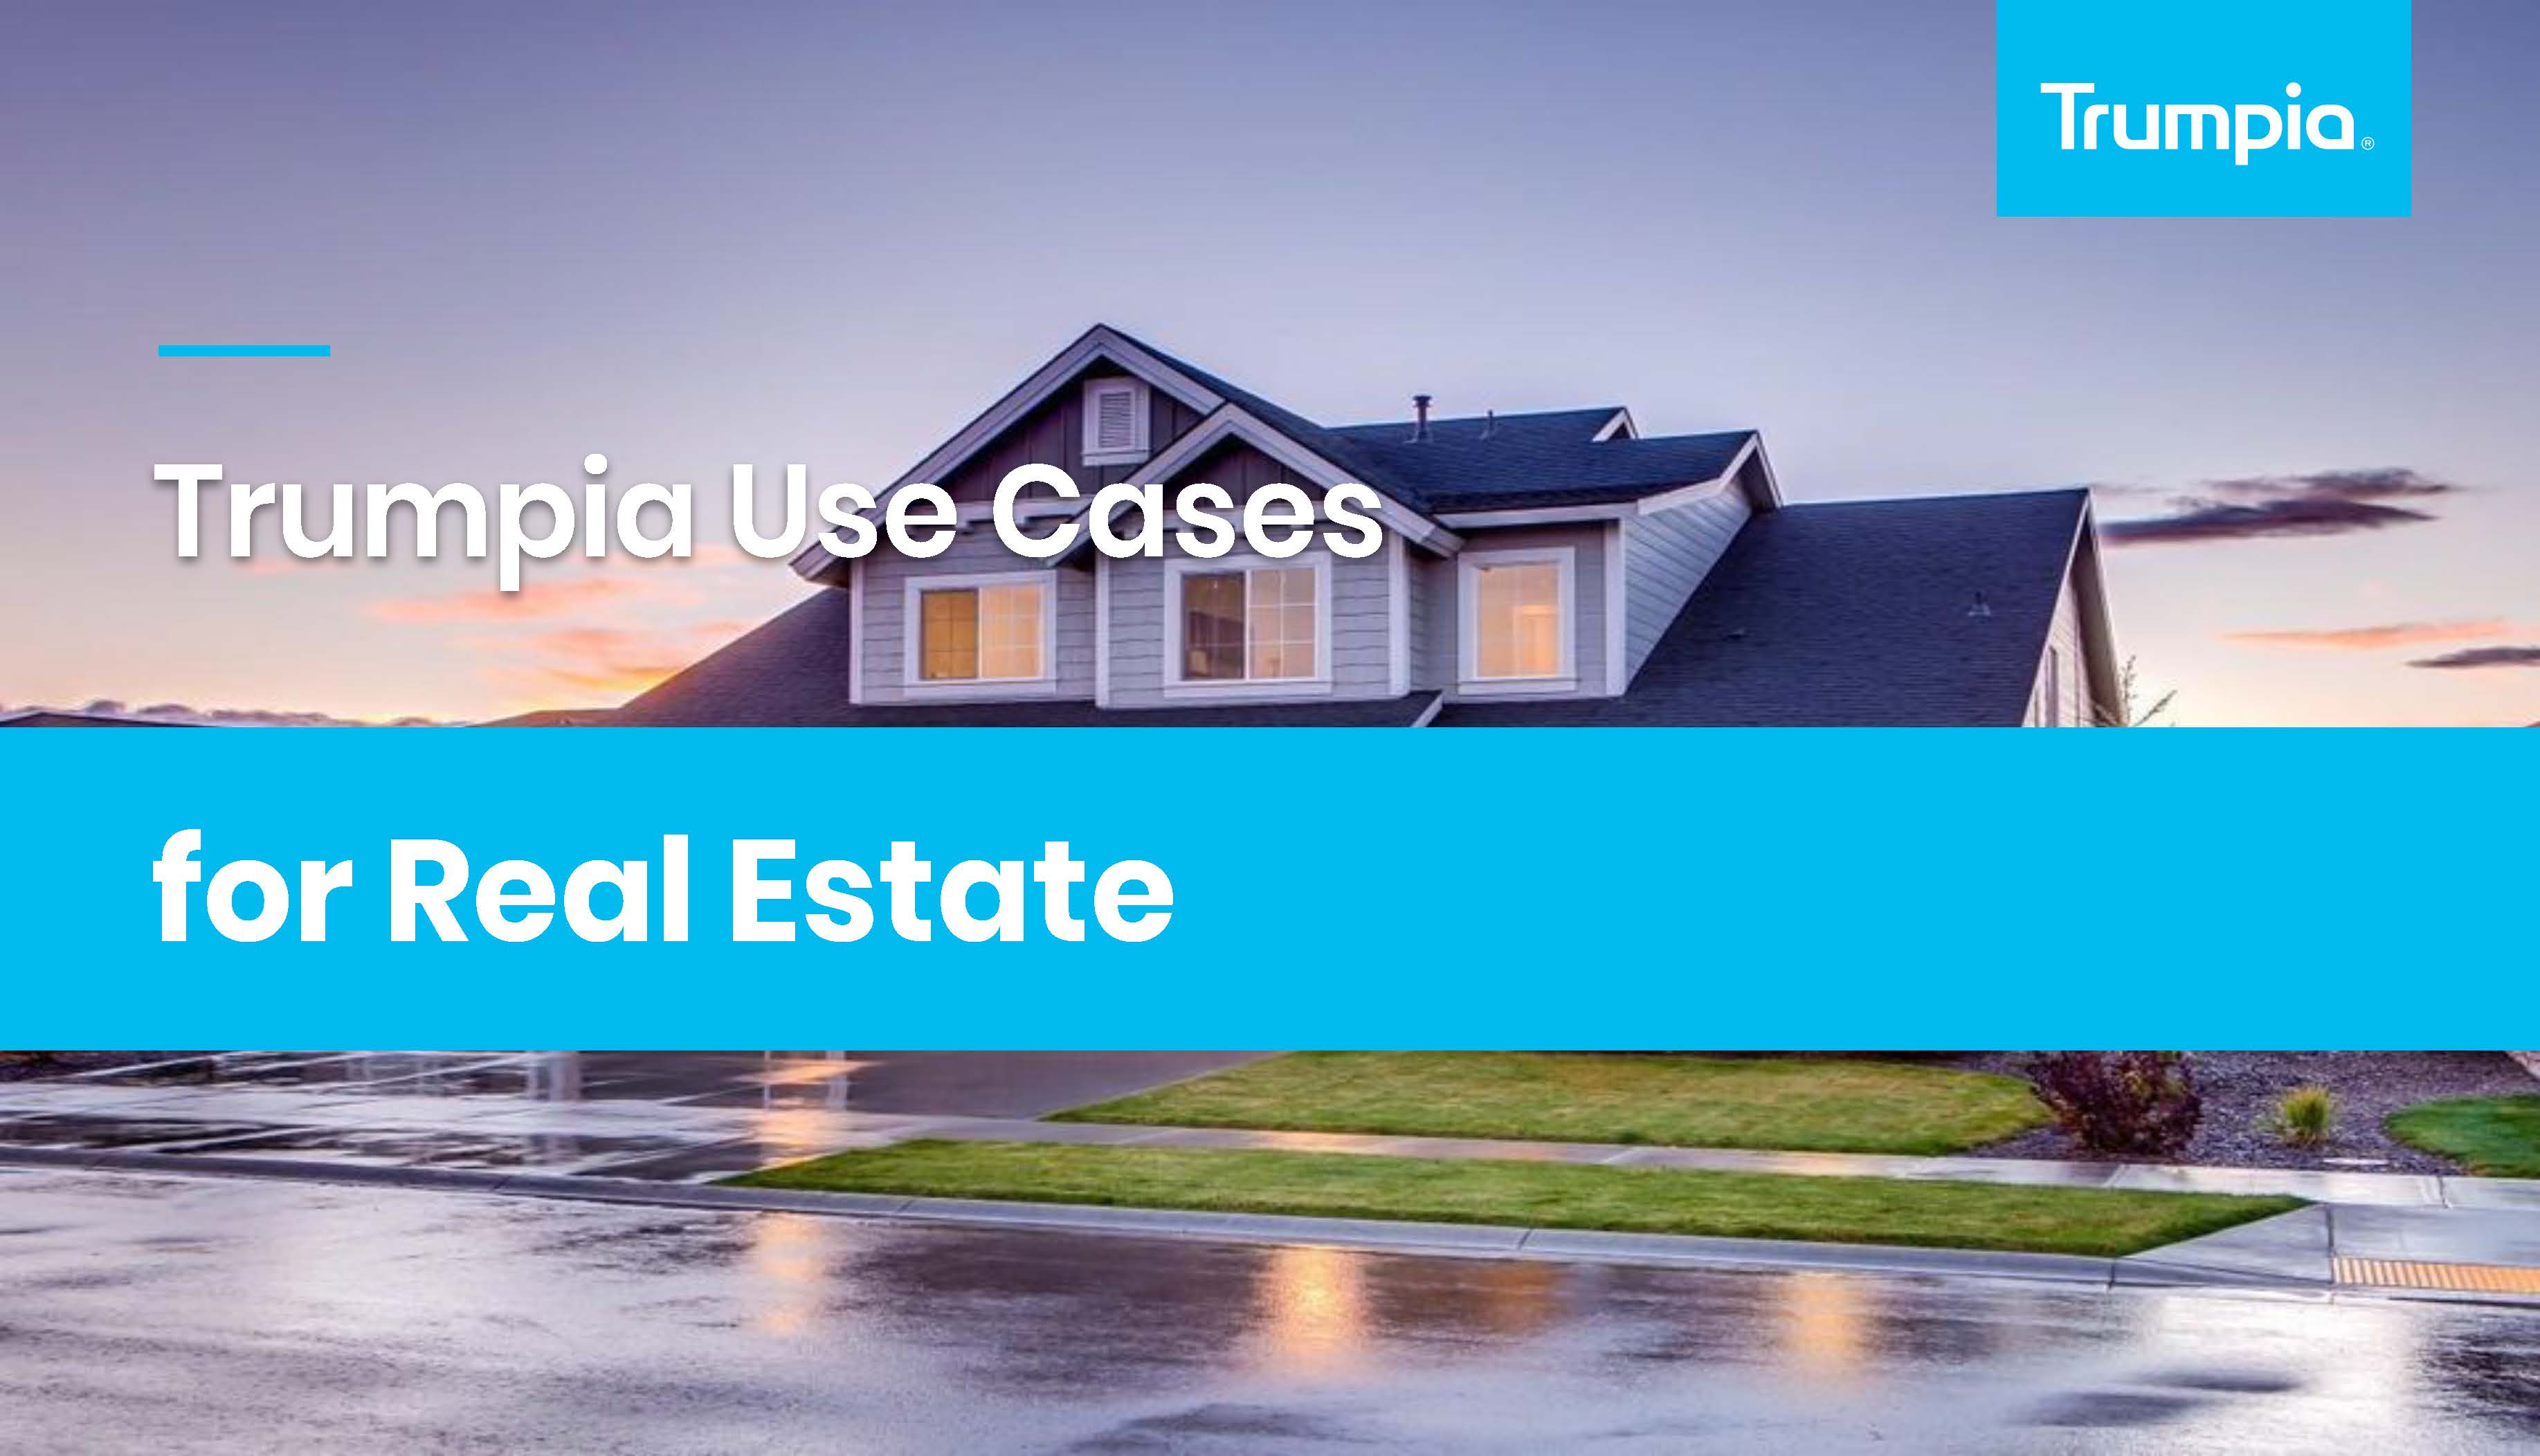 RealEstate_PandemicUseCase_Page_01